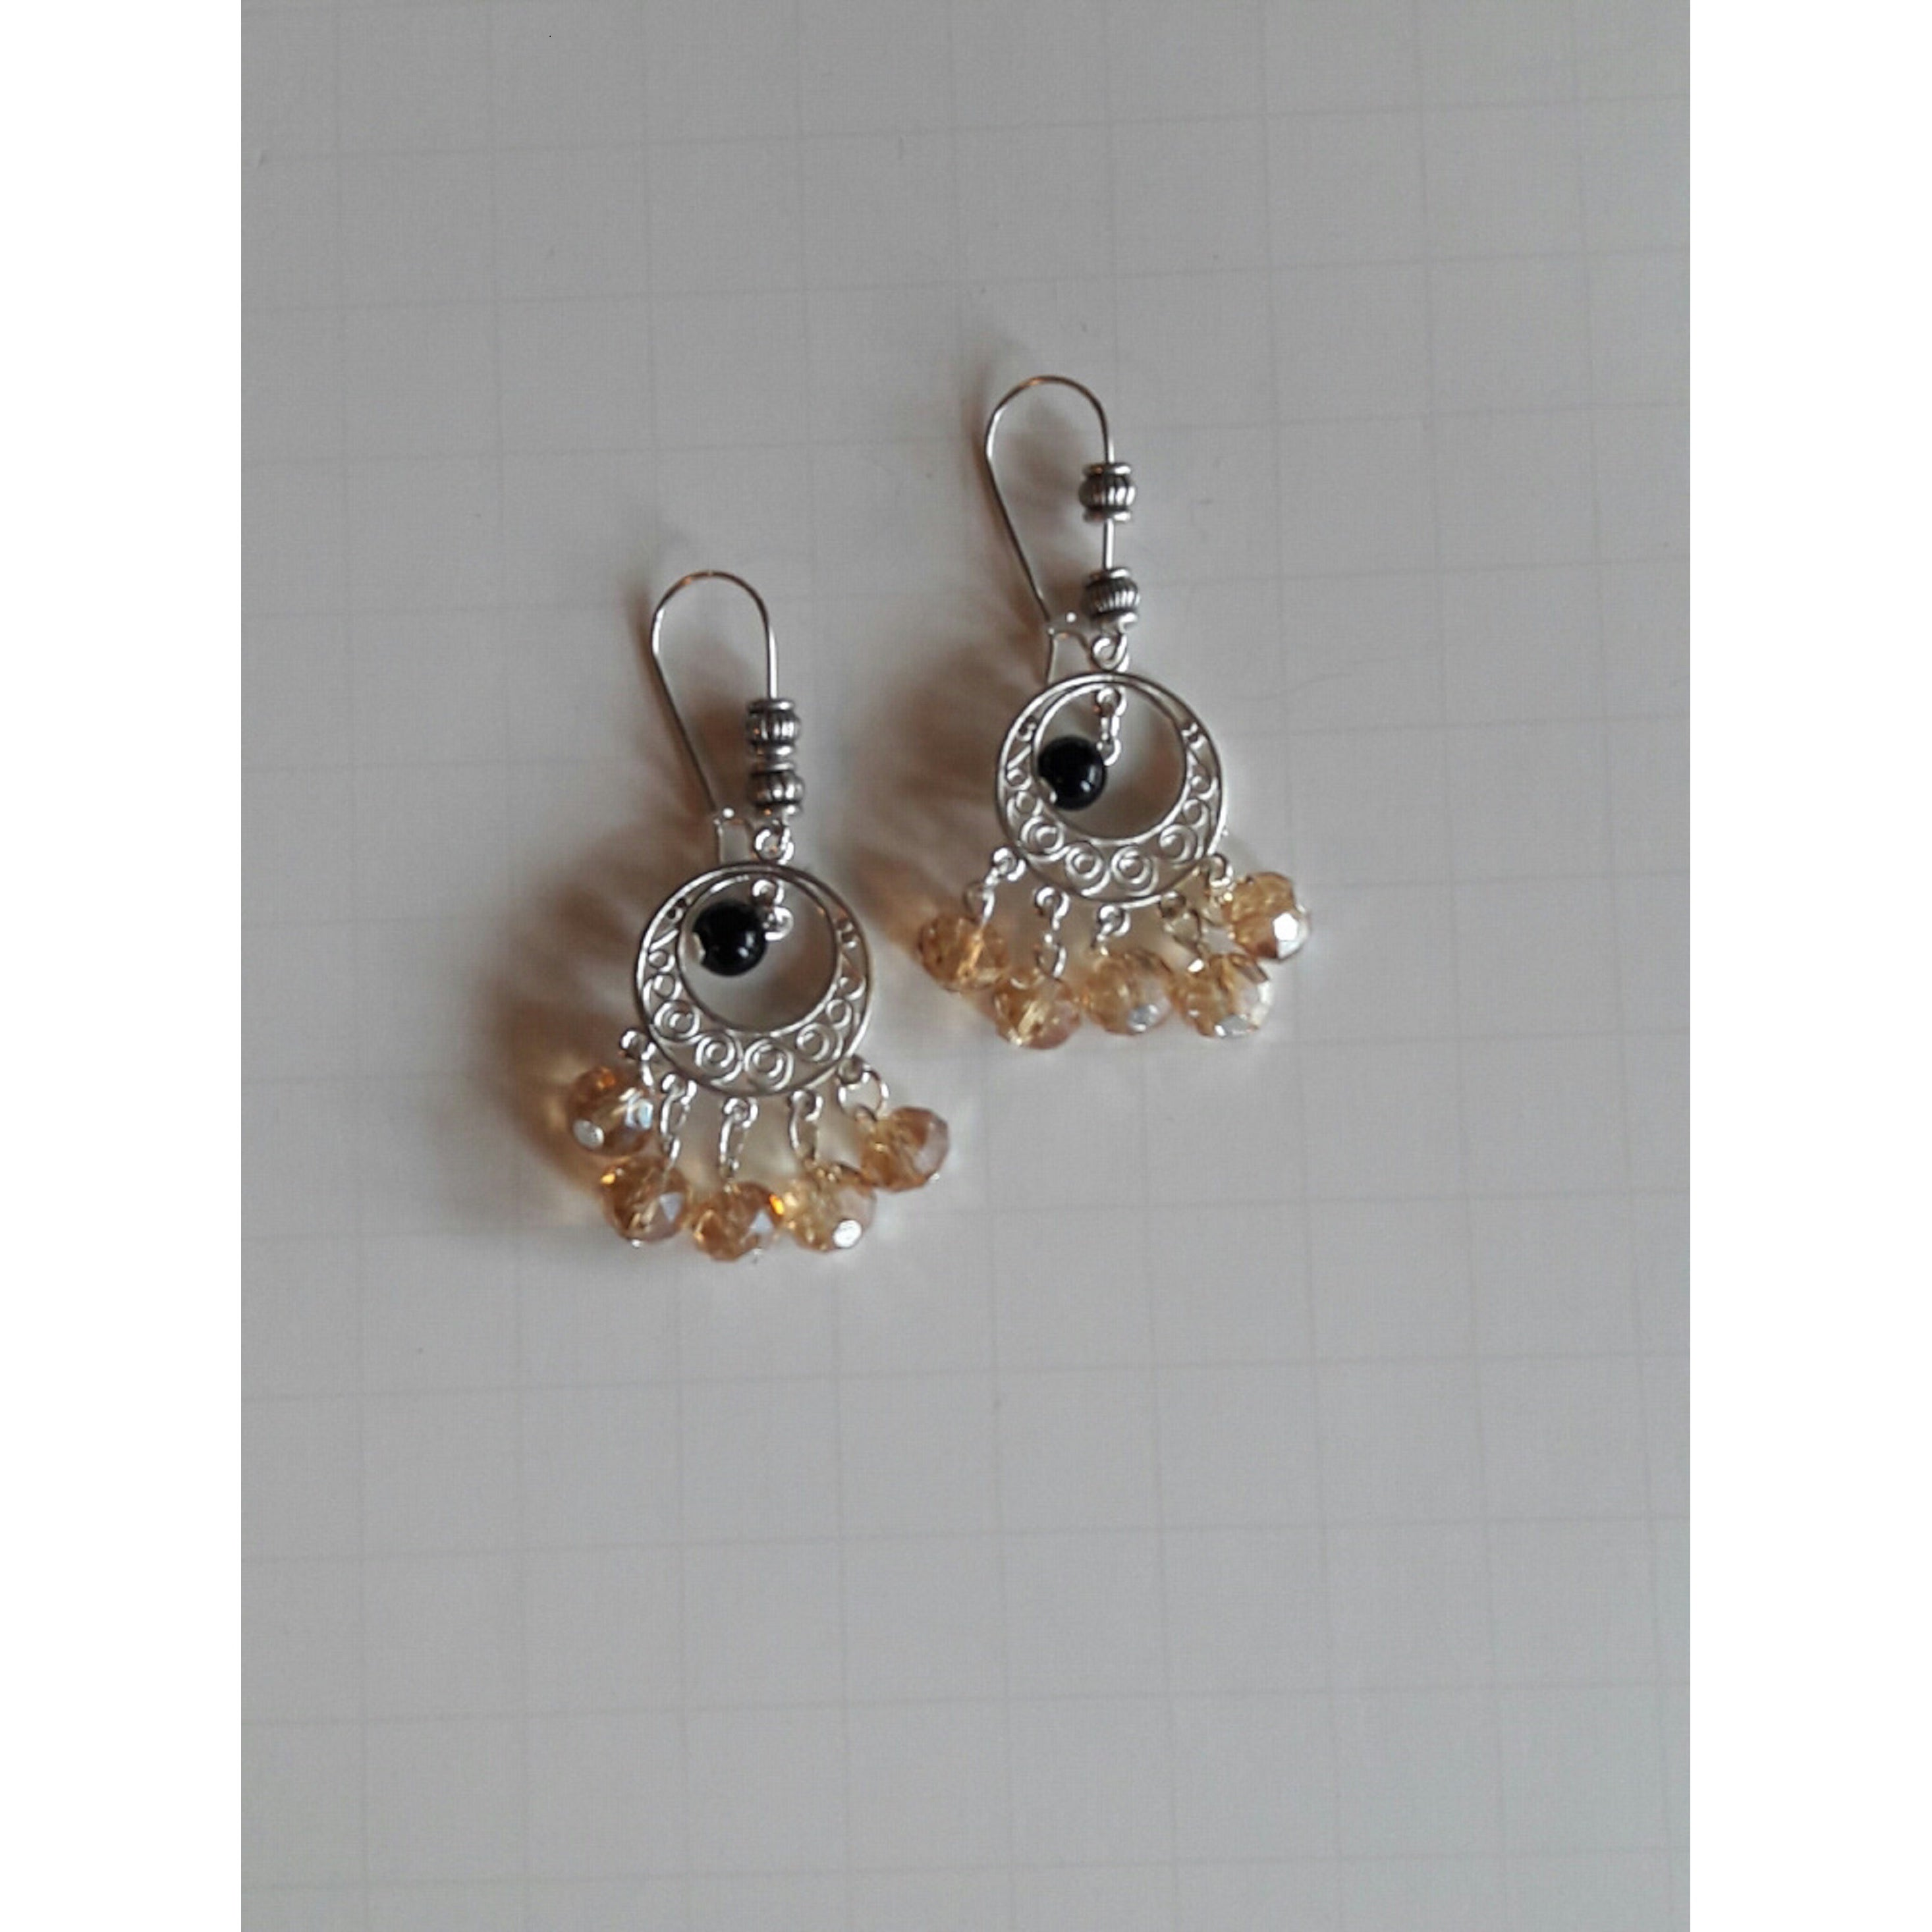 ff3c388ac6c21 Handmade Champagne Crystal Chandelier Earrings (USA)